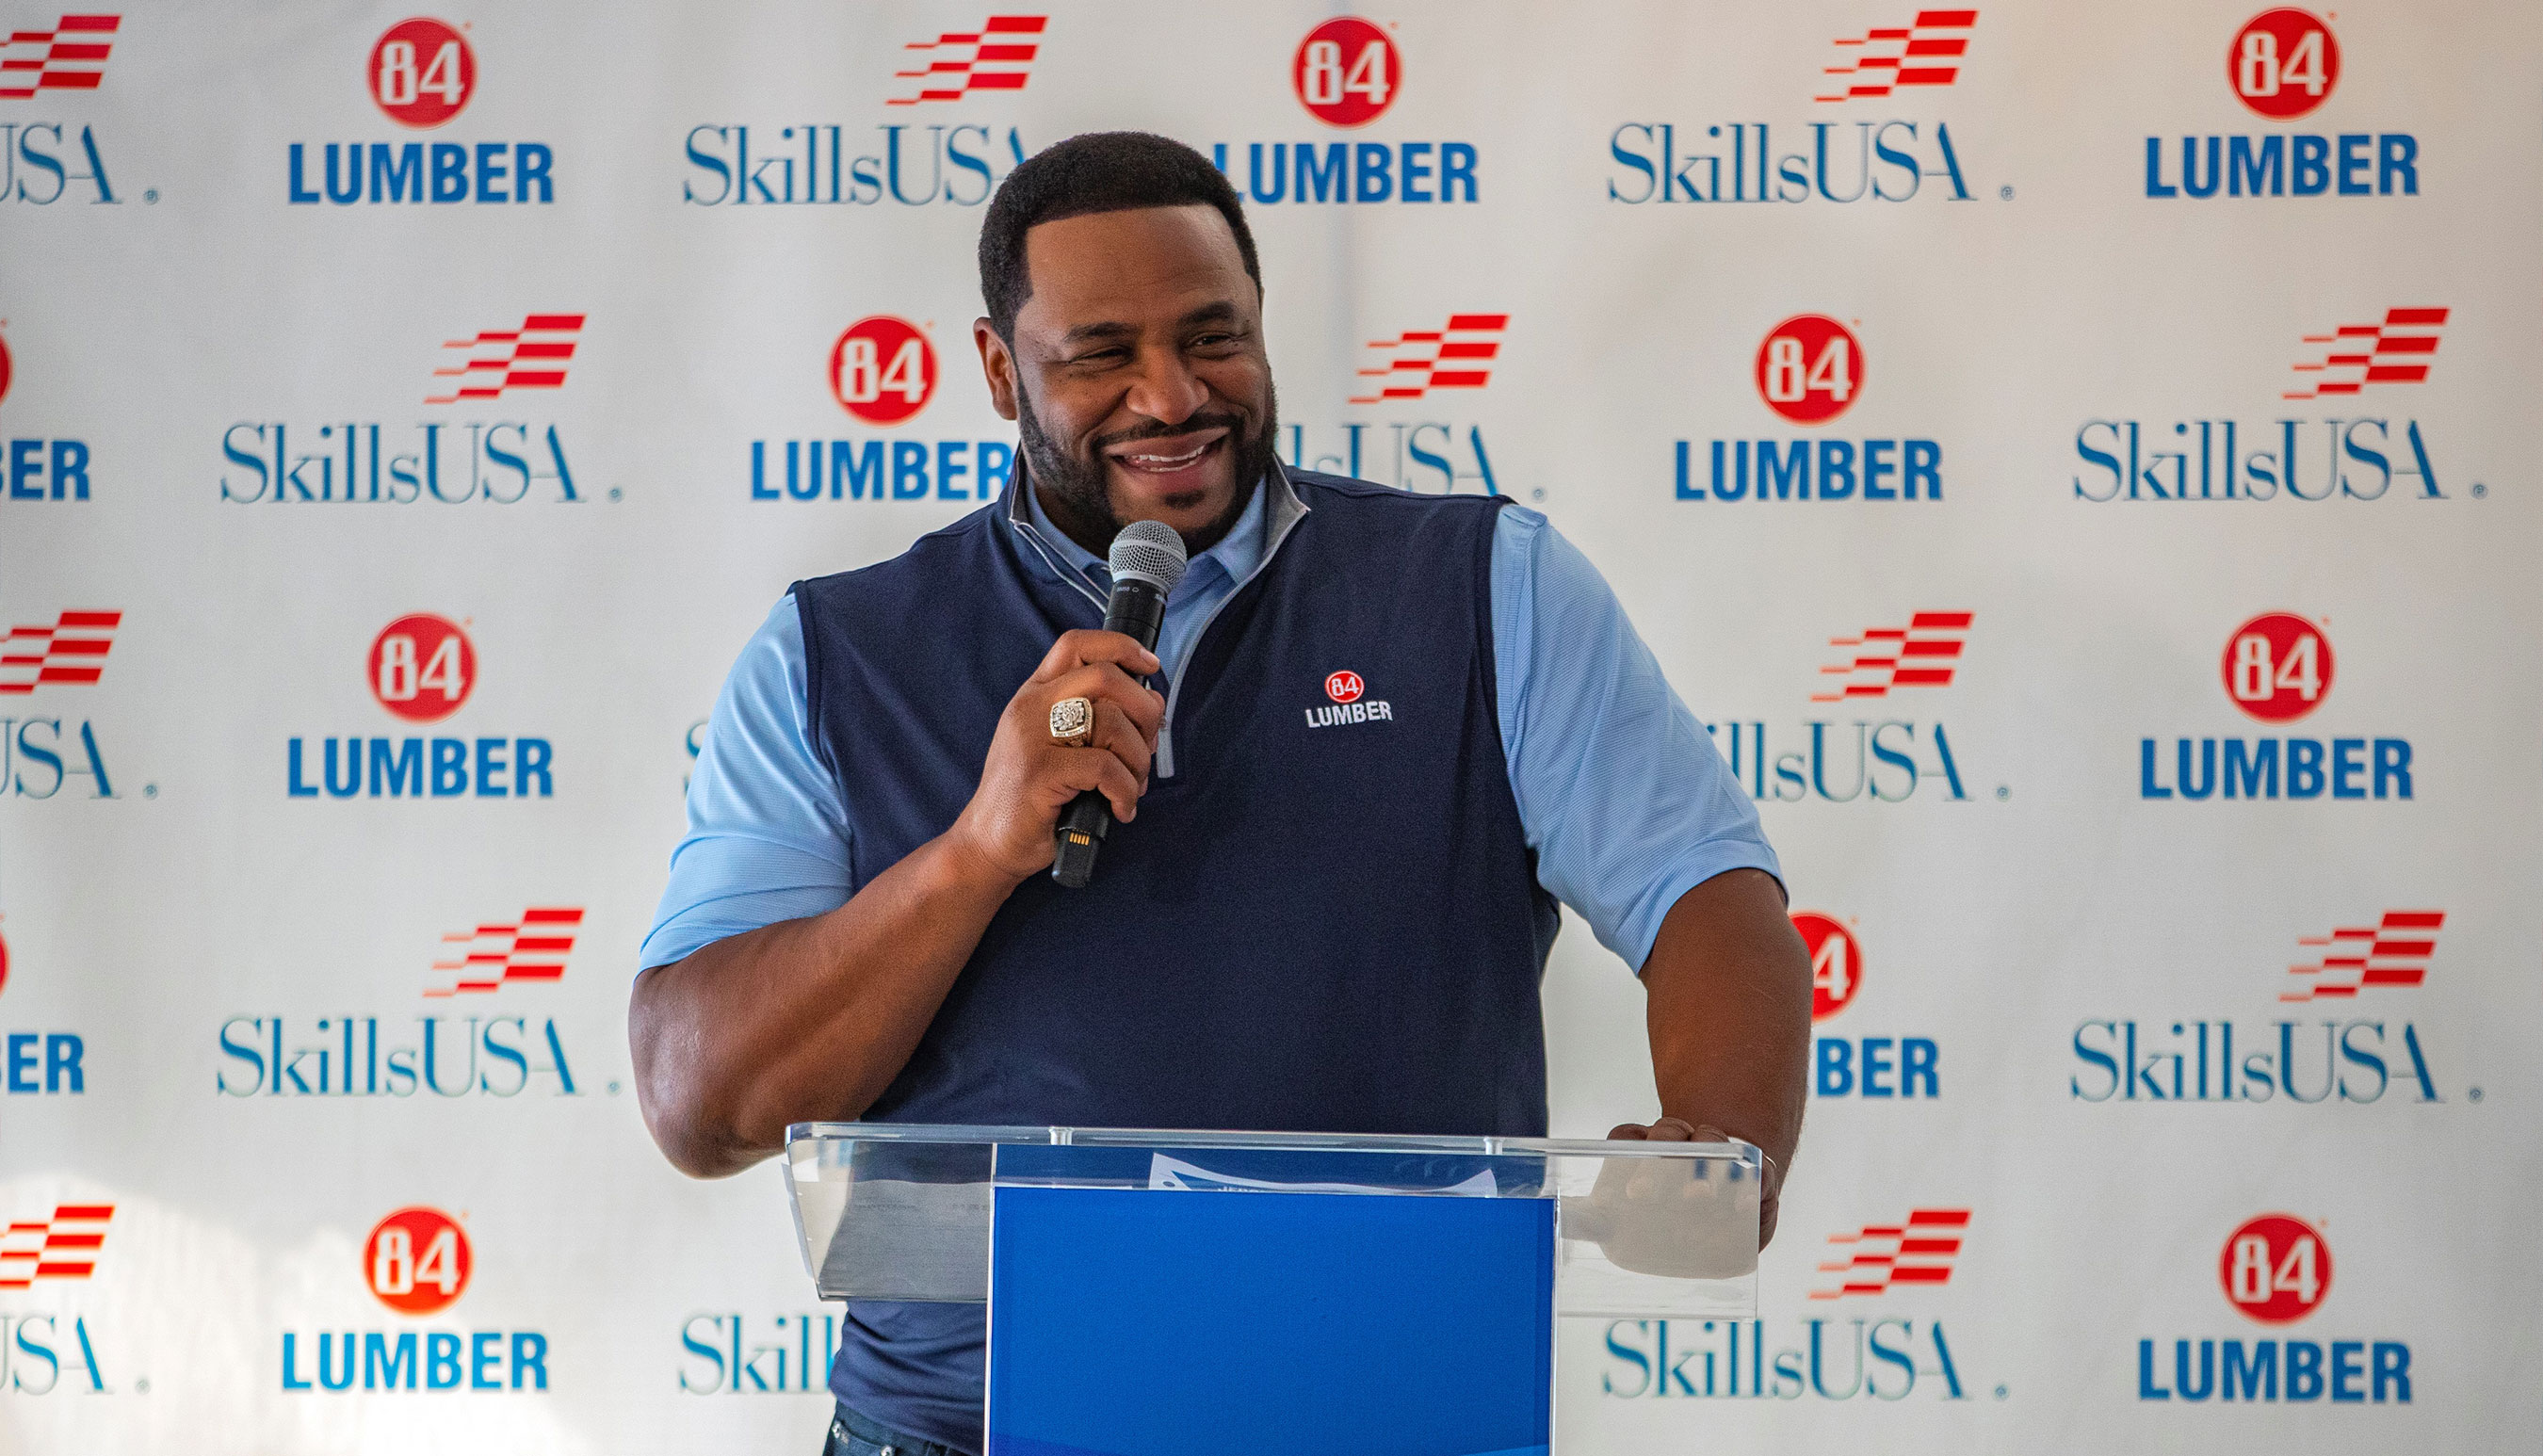 NFL Great Jerome Bettis Helps Recognizes High School Seniors Committing to Skilled Trades during SkillsUSA National Signing Day